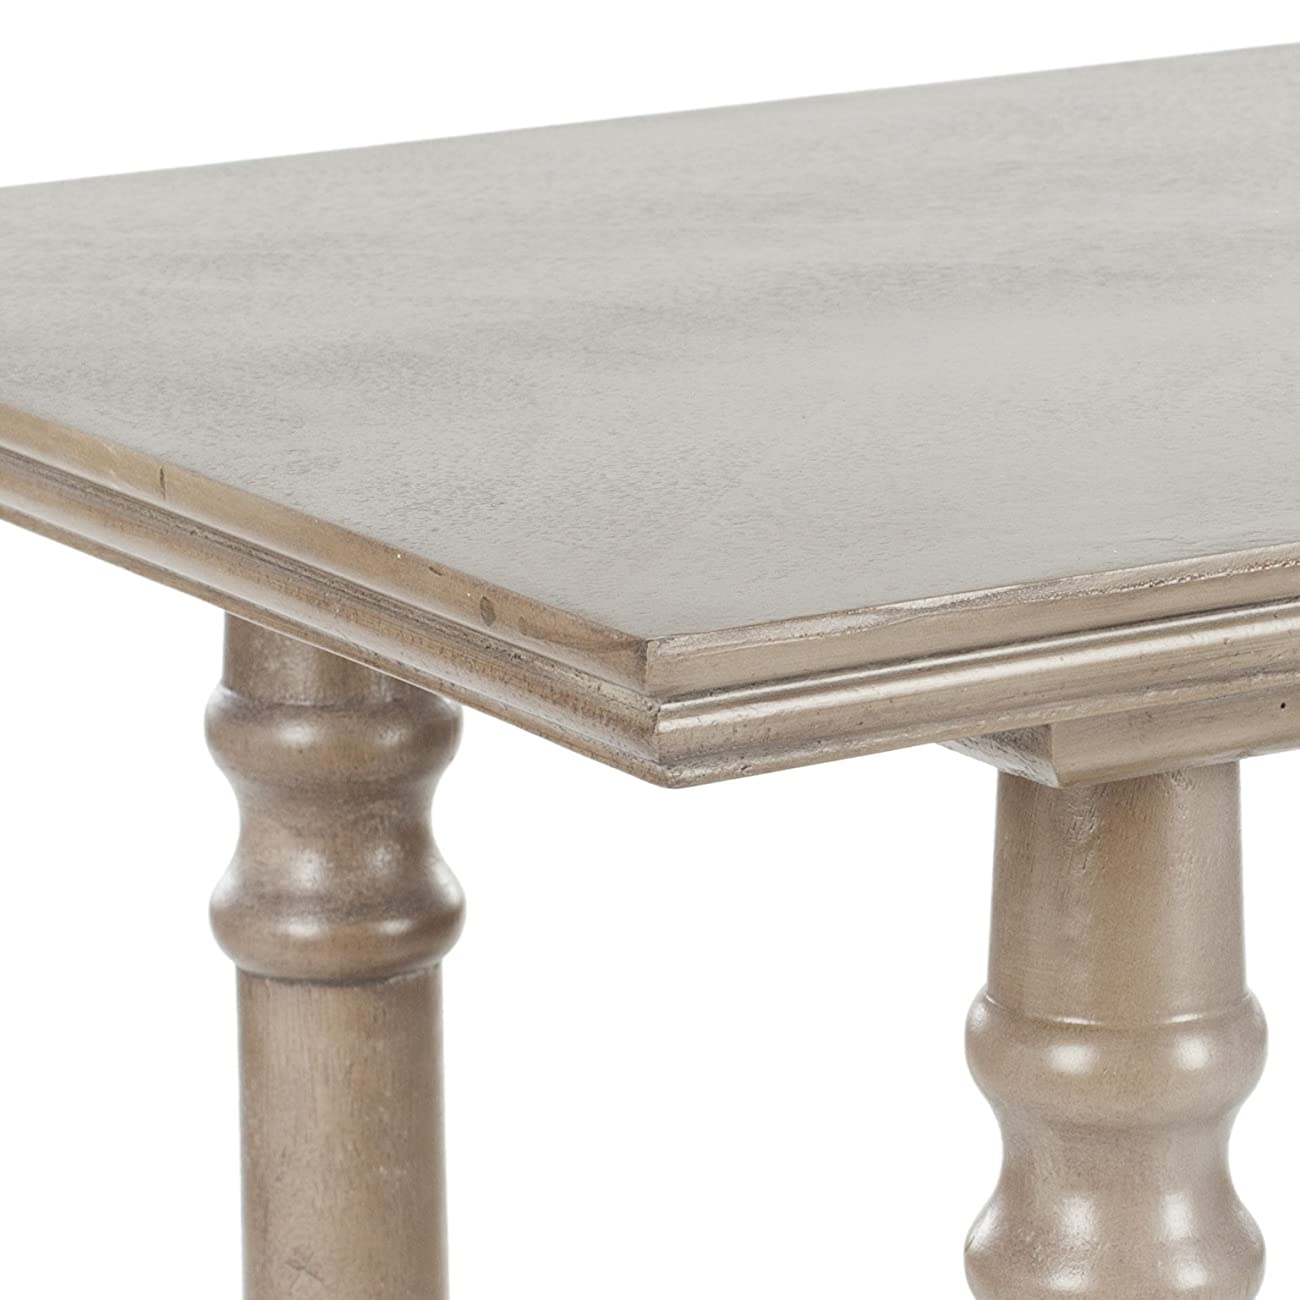 Safavieh American Home Collection Concord Console Table, Vintage Grey 1